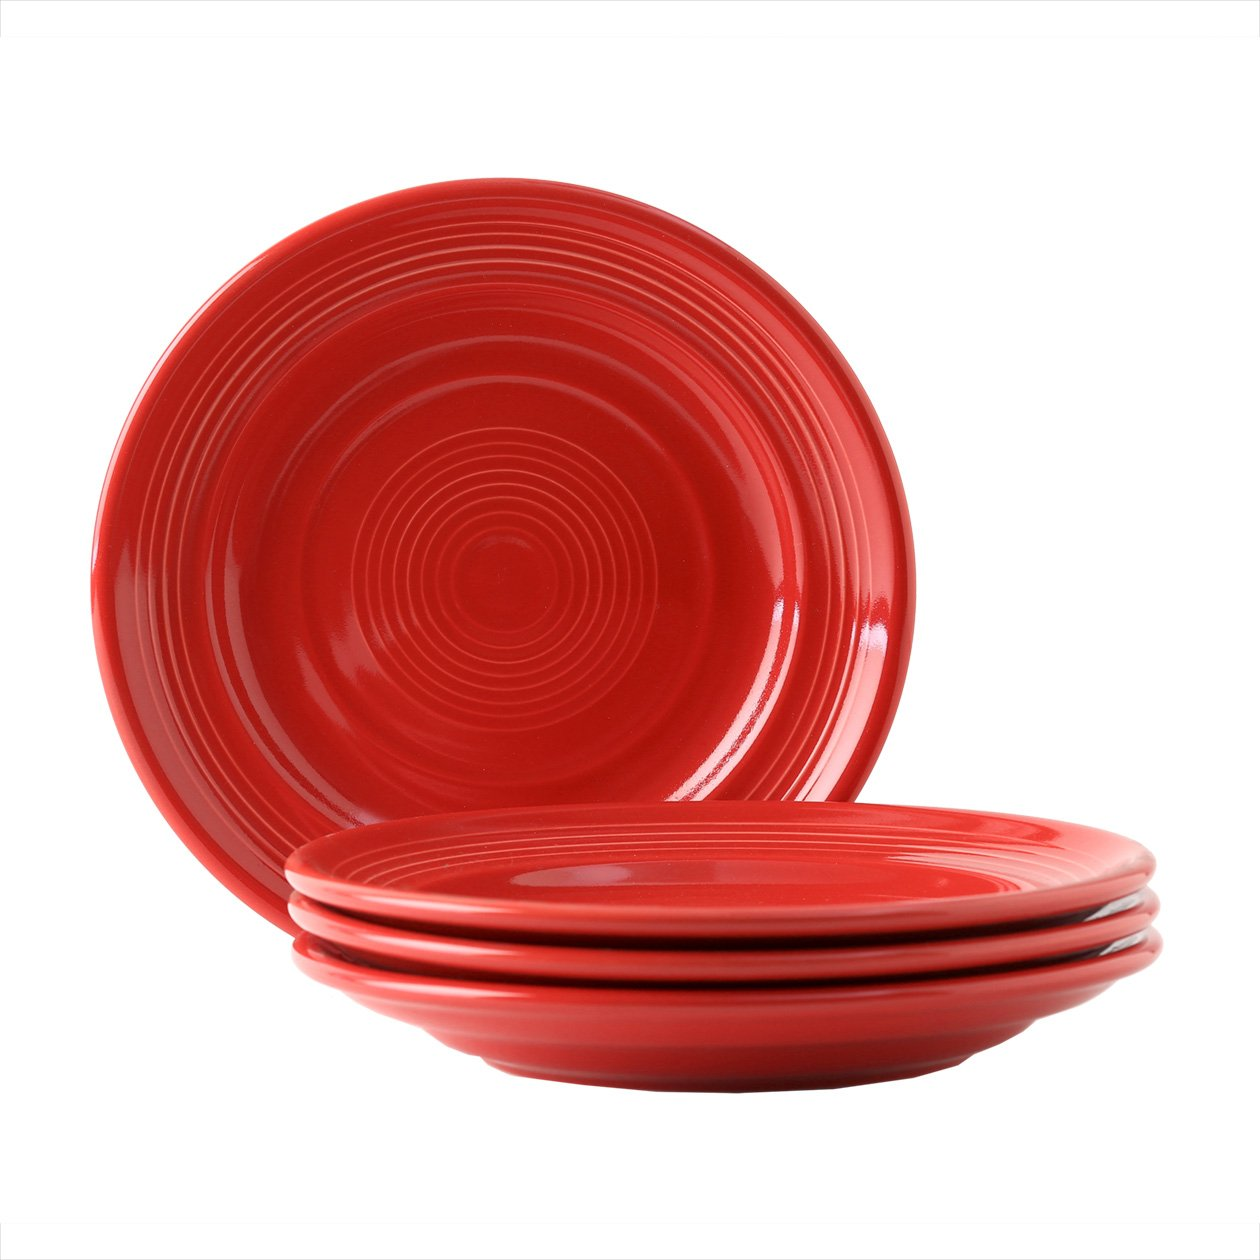 Tuxton Home Concentrix Salad Plate (Set of 4), 7 1/2'', Cayenne Red; Heavy Duty; Chip Resistant; Lead and Cadmium Free; Freezer to Oven Safe up to 500F